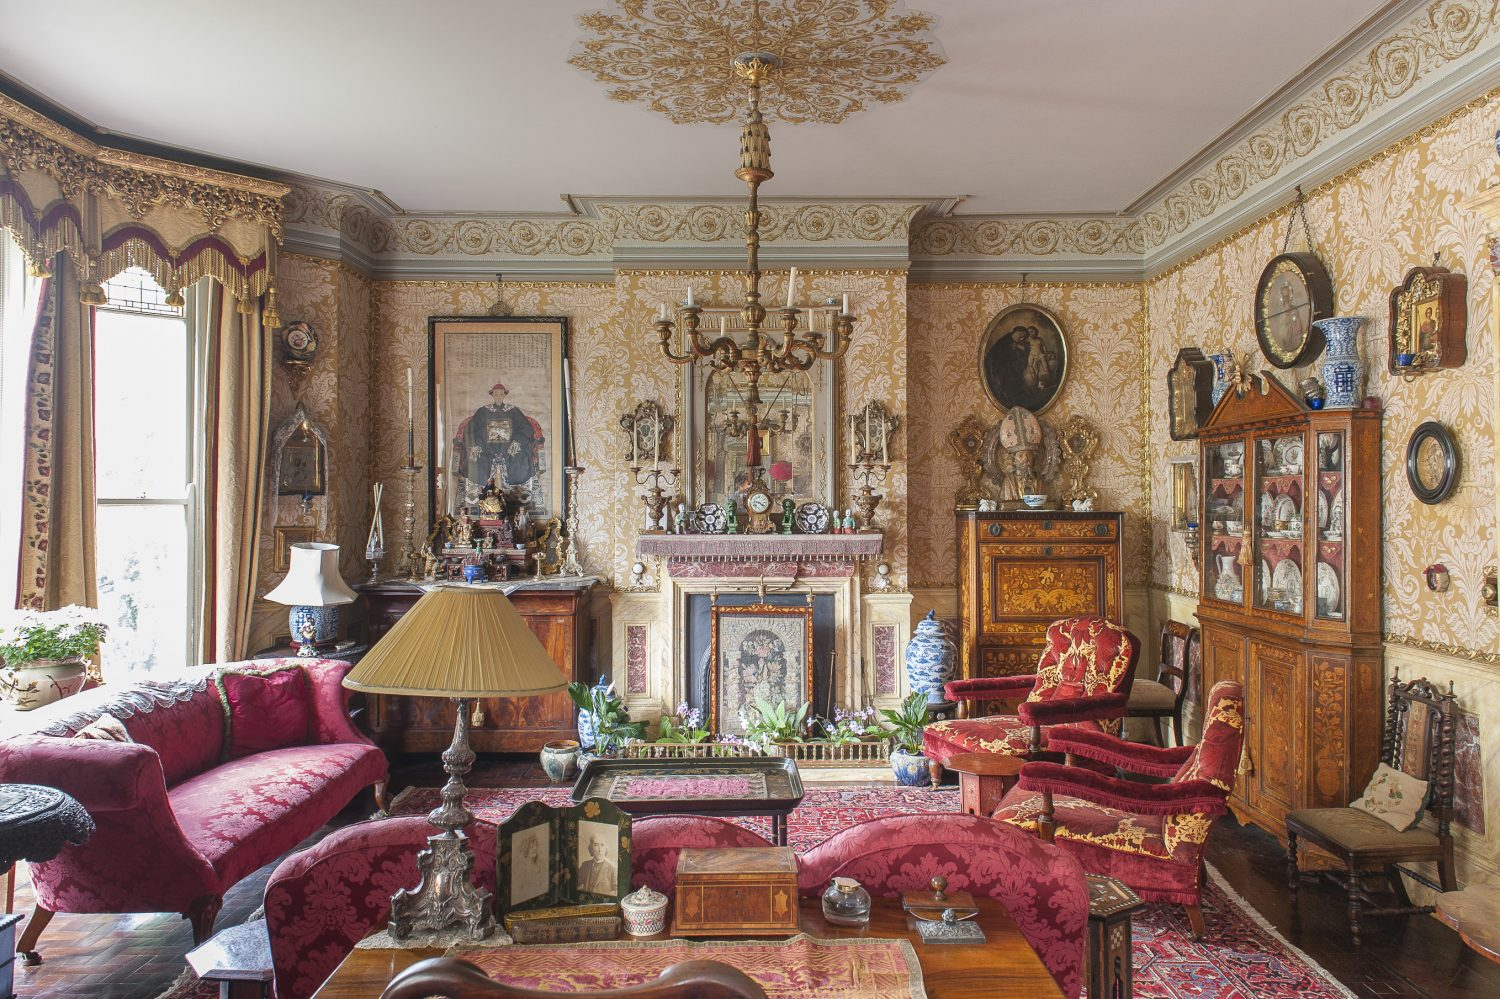 The drawing room is a superb double salon with matching fireplaces at each end